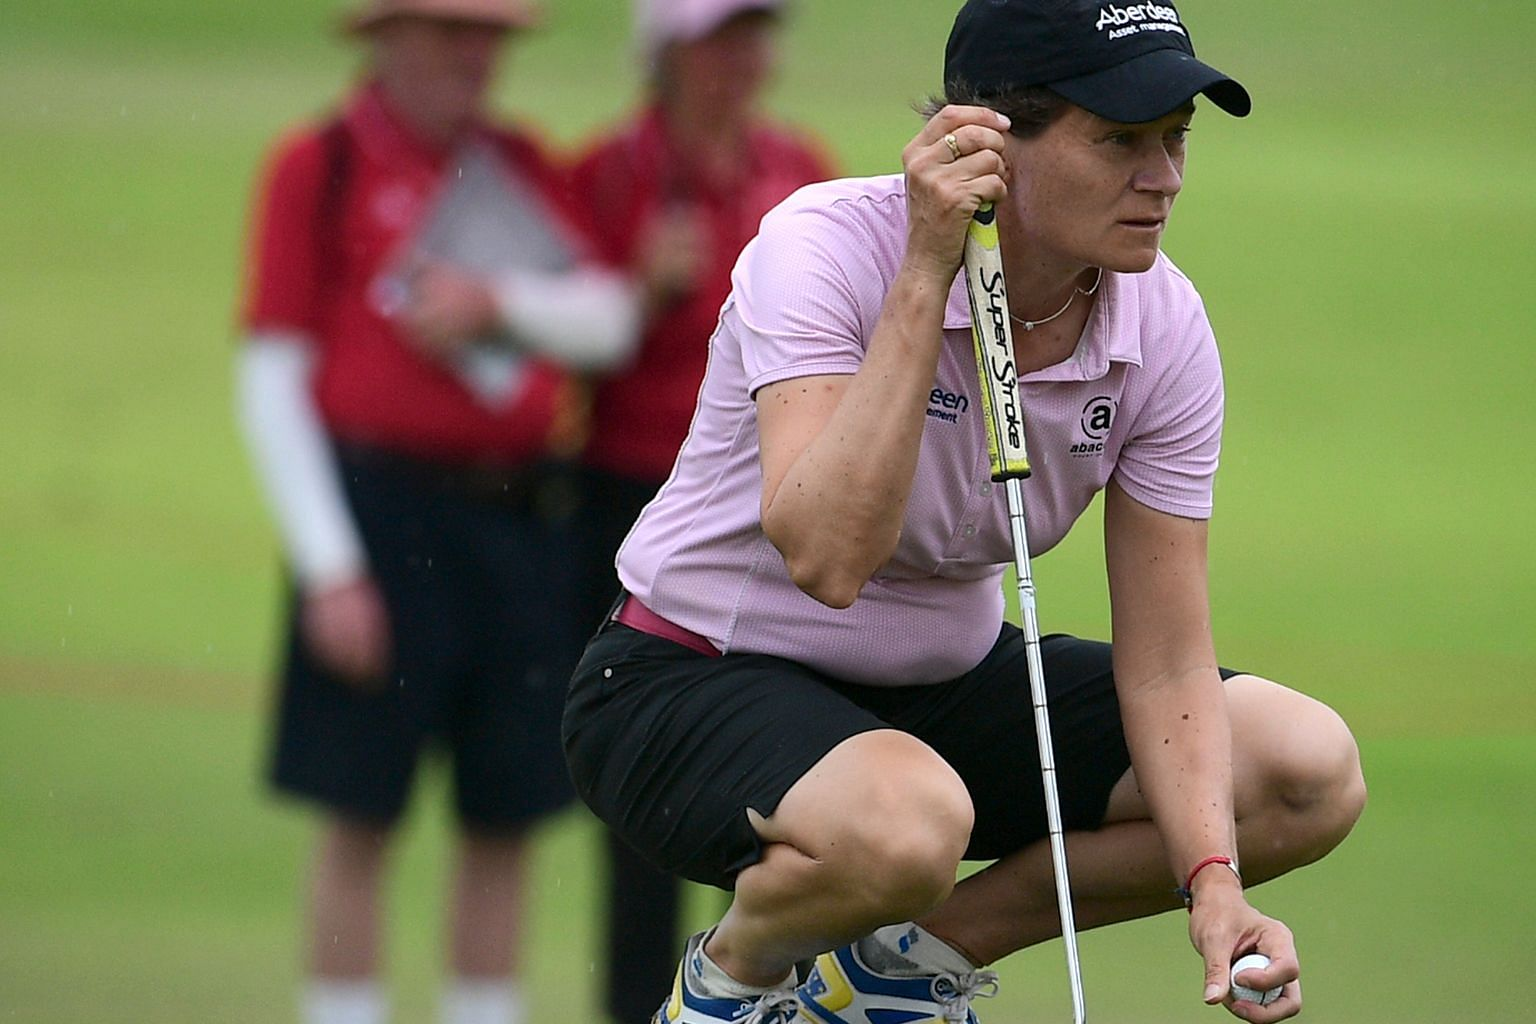 """Scottish golfer Catriona Matthew on the 13th hole of the HSBC Women's Champions yesterday. She is 47 and a mother of two and says that older golfers acquire """"patience"""" along with their expertise."""